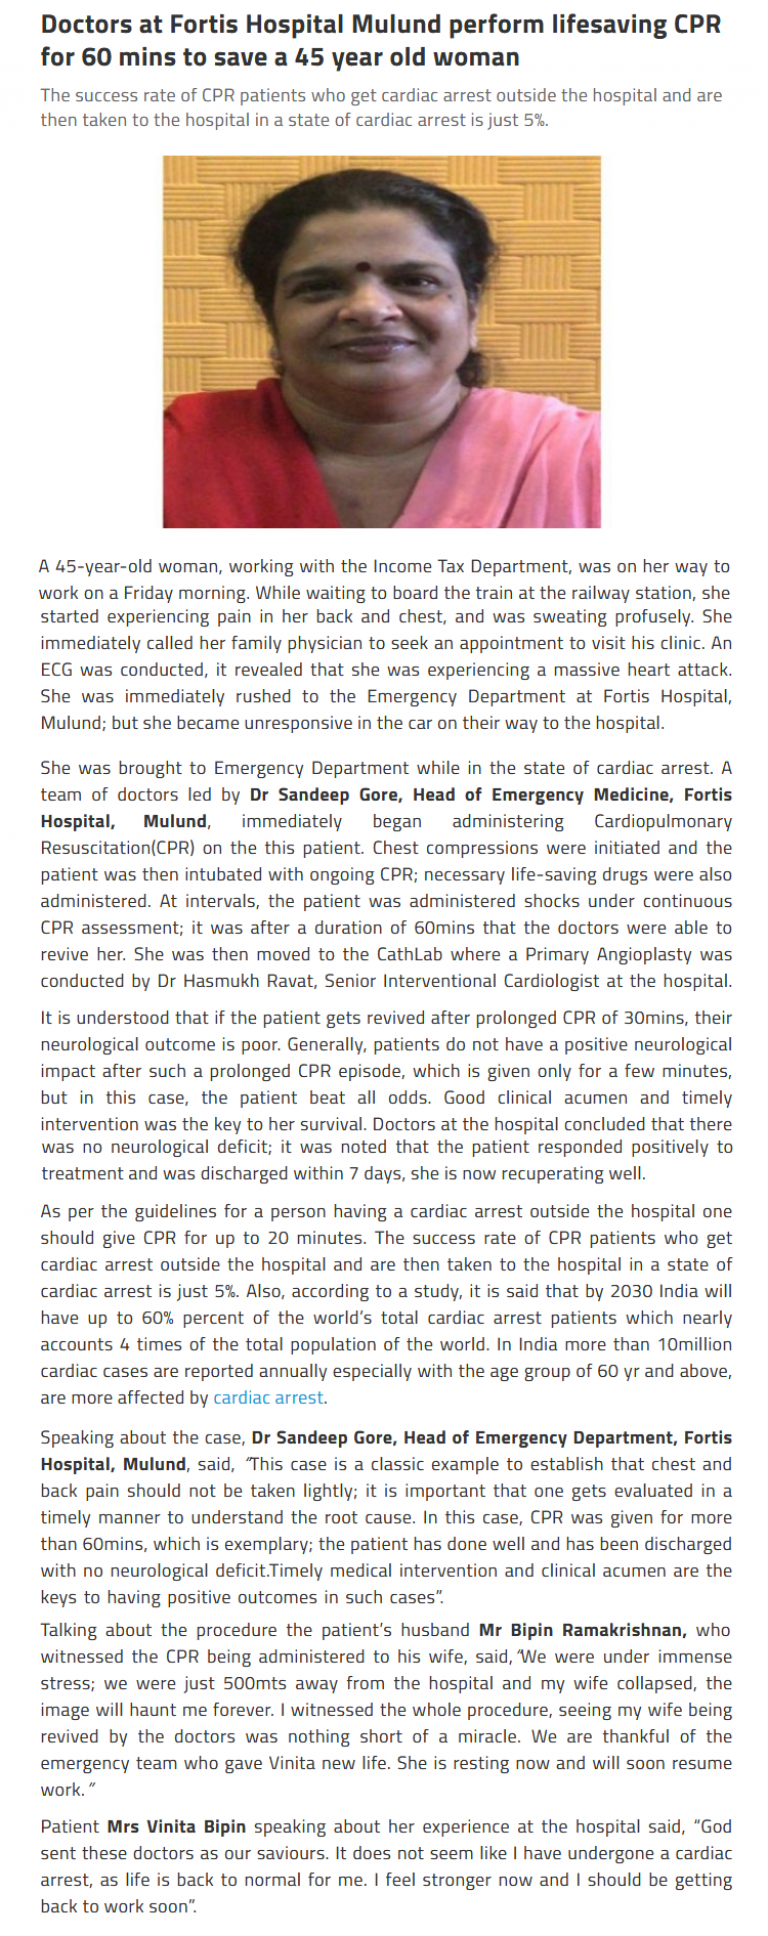 News - Doctors at Fortis Hospital Mulund Perform Lifesaving CPR for 60 mins to Save a 45 Year old Woman